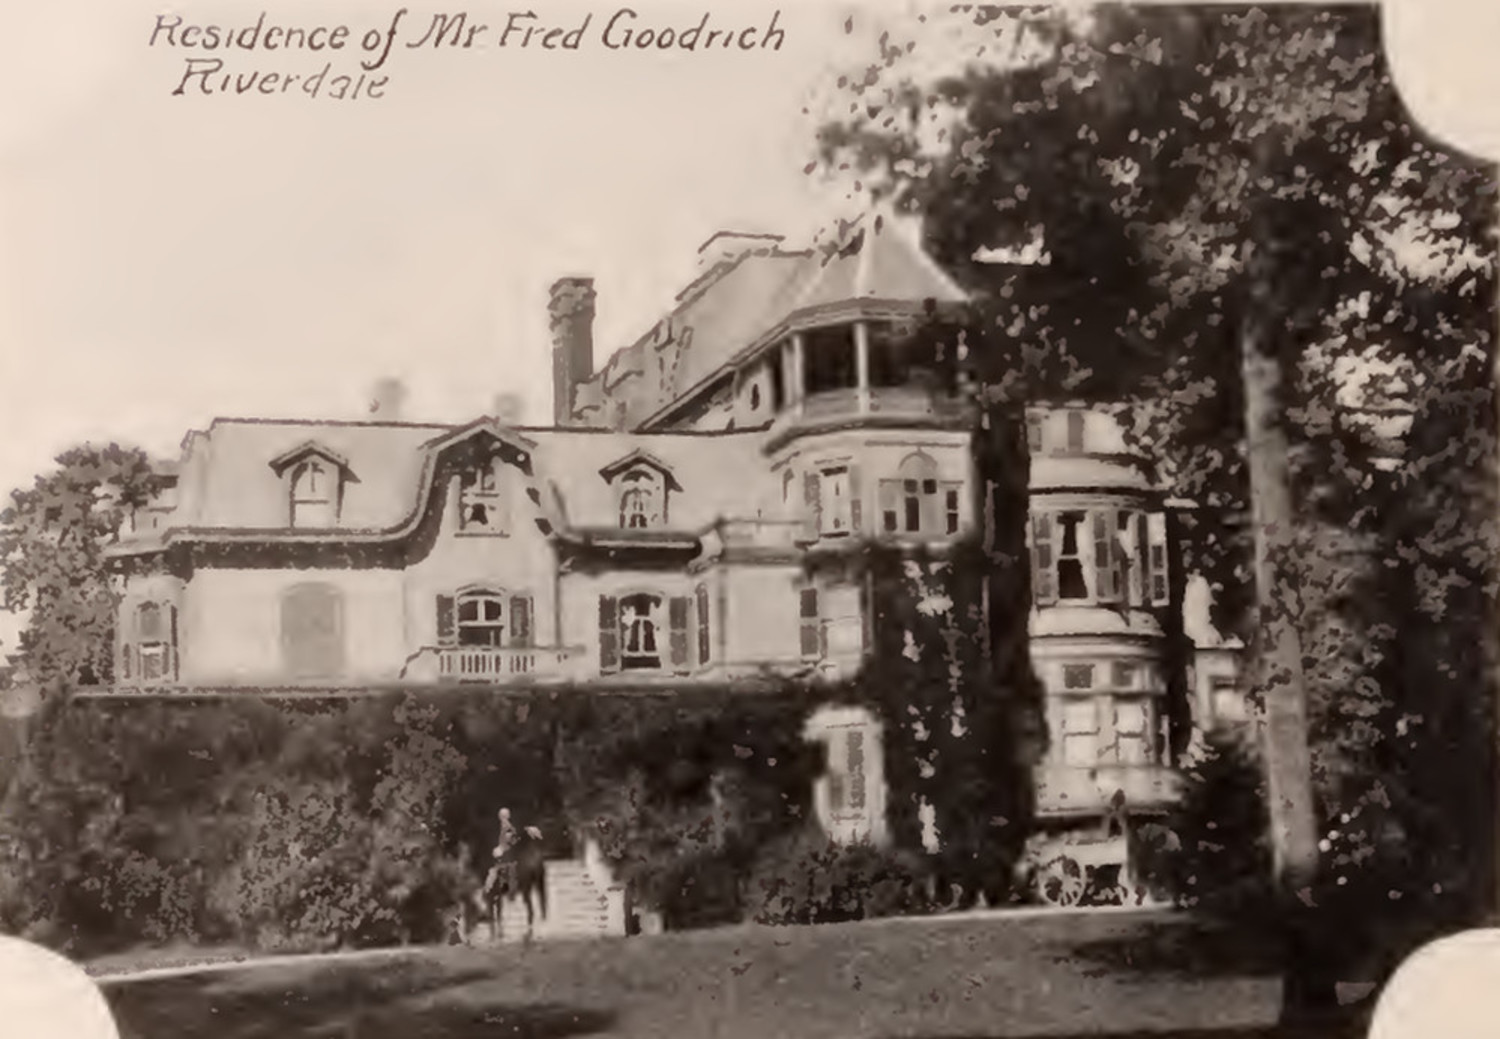 Fred Goodrich residence Riverdale Bronx 1897